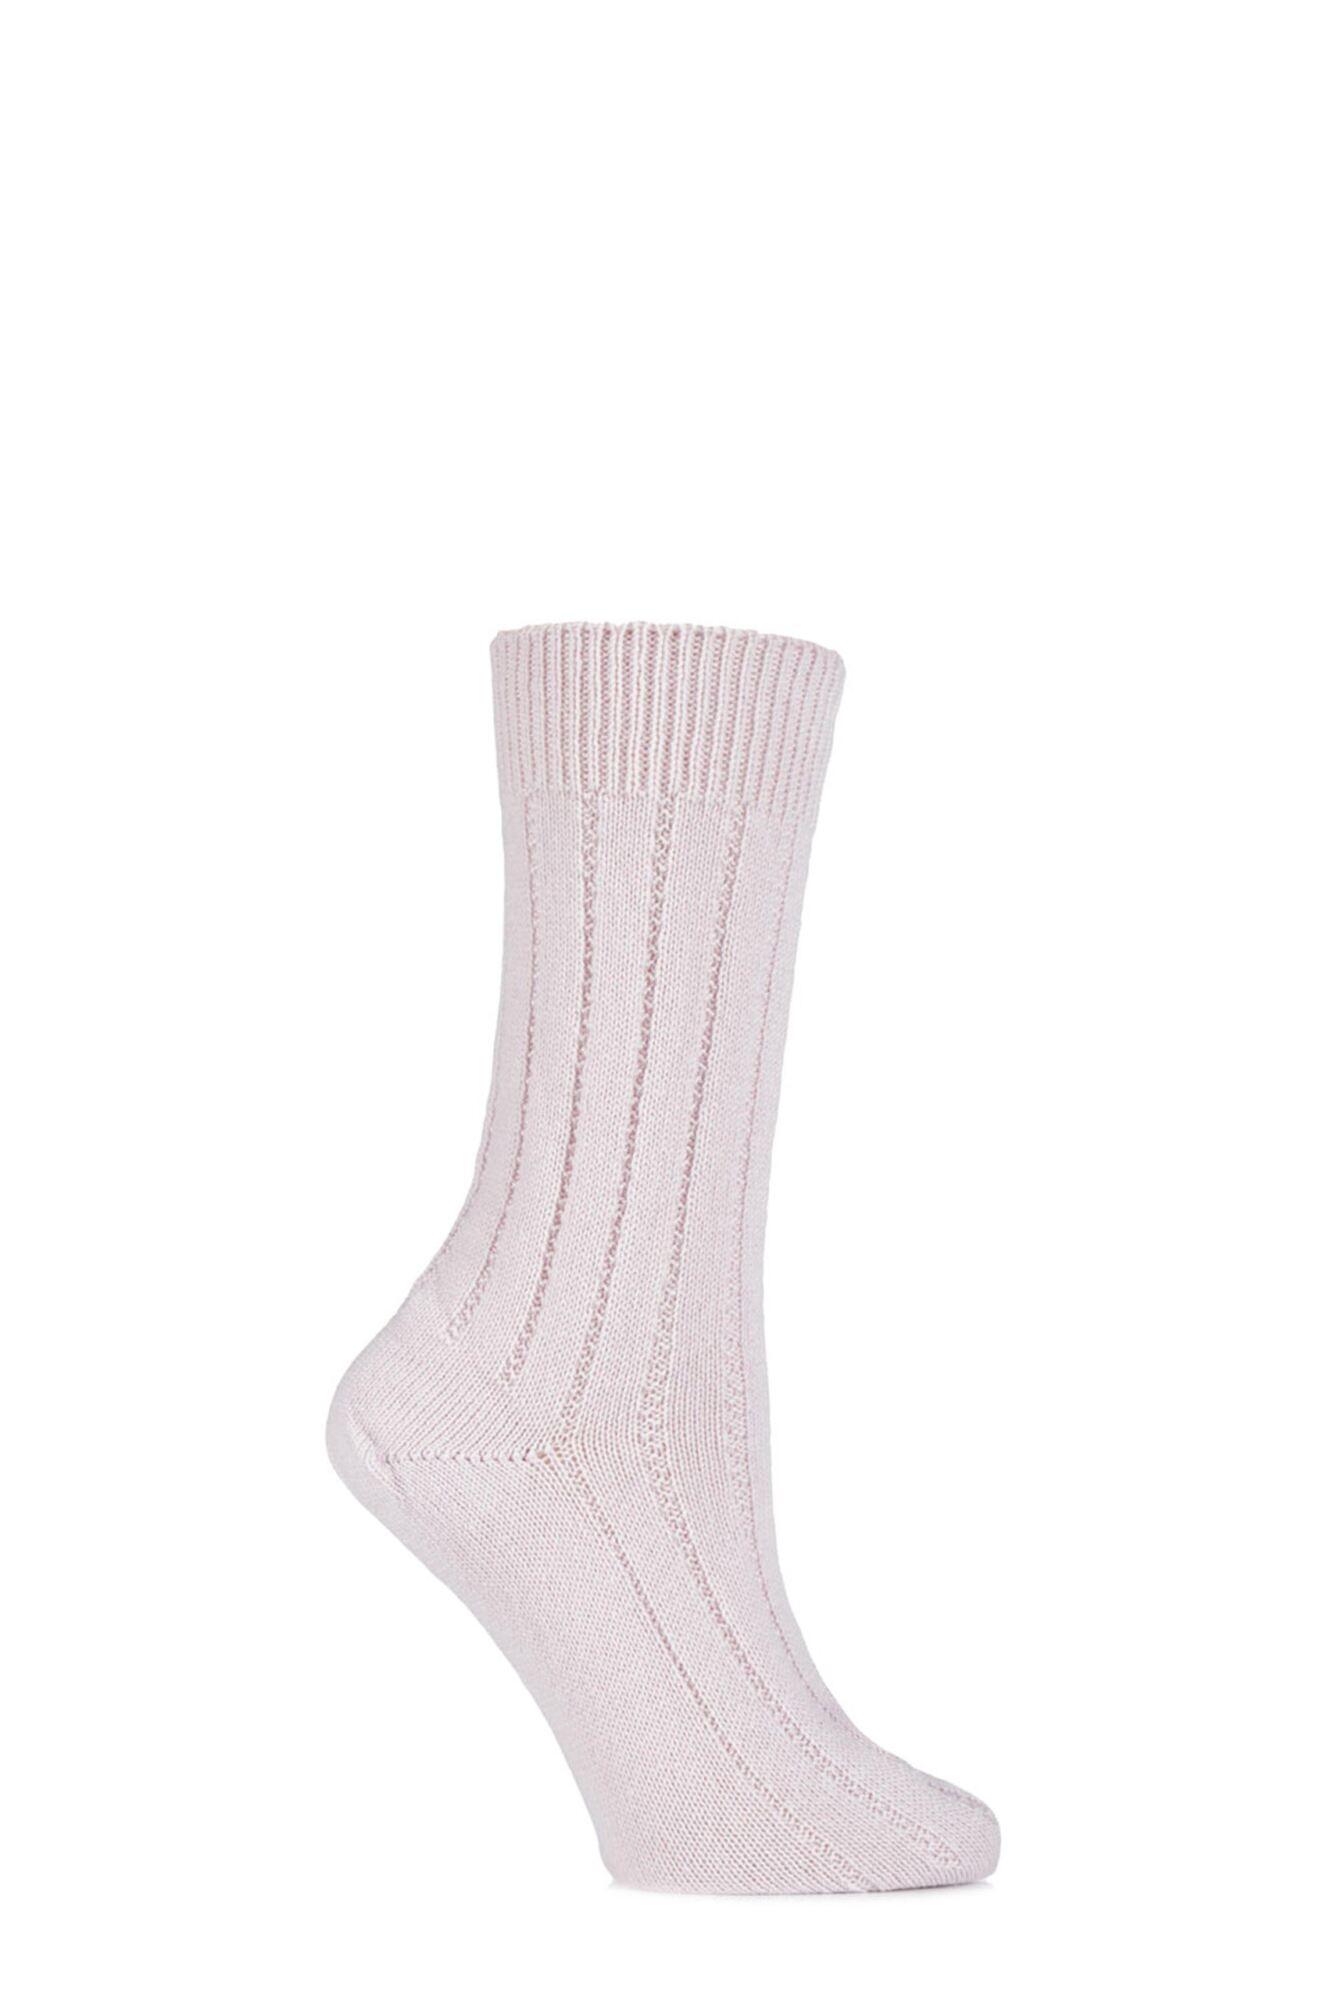 1 Pair of London 100% Cashmere Tuckstitch Bed Socks with Smooth Toe Seams Ladies - SOCKSHOP of London